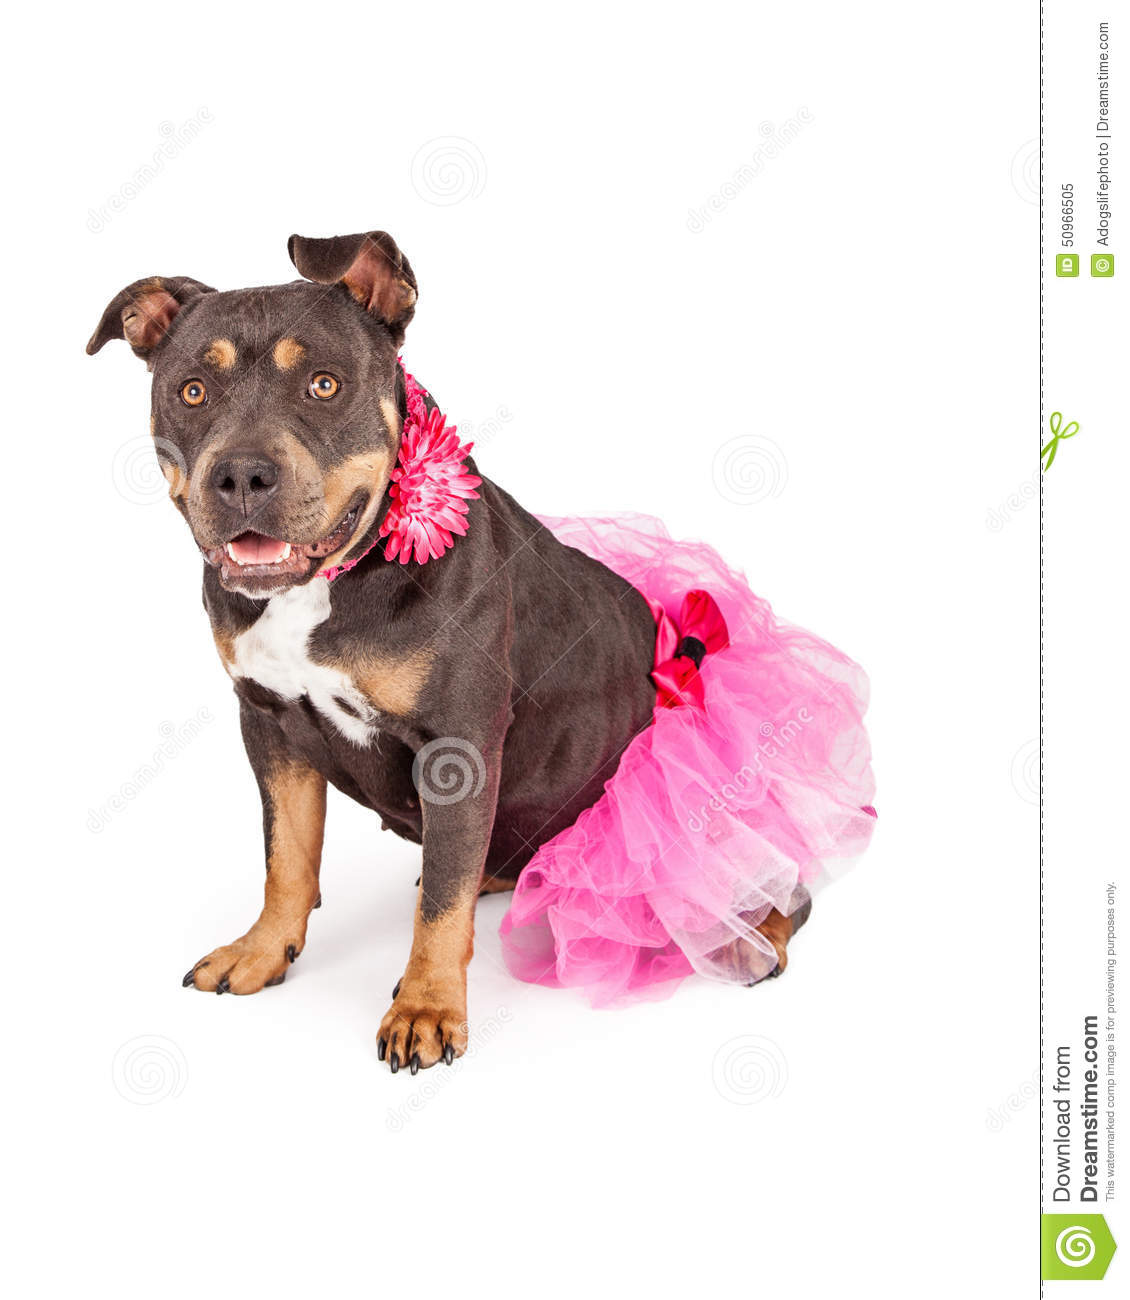 Pretty Pit Bull Wearing Pink Tutu Stock Image - Image of